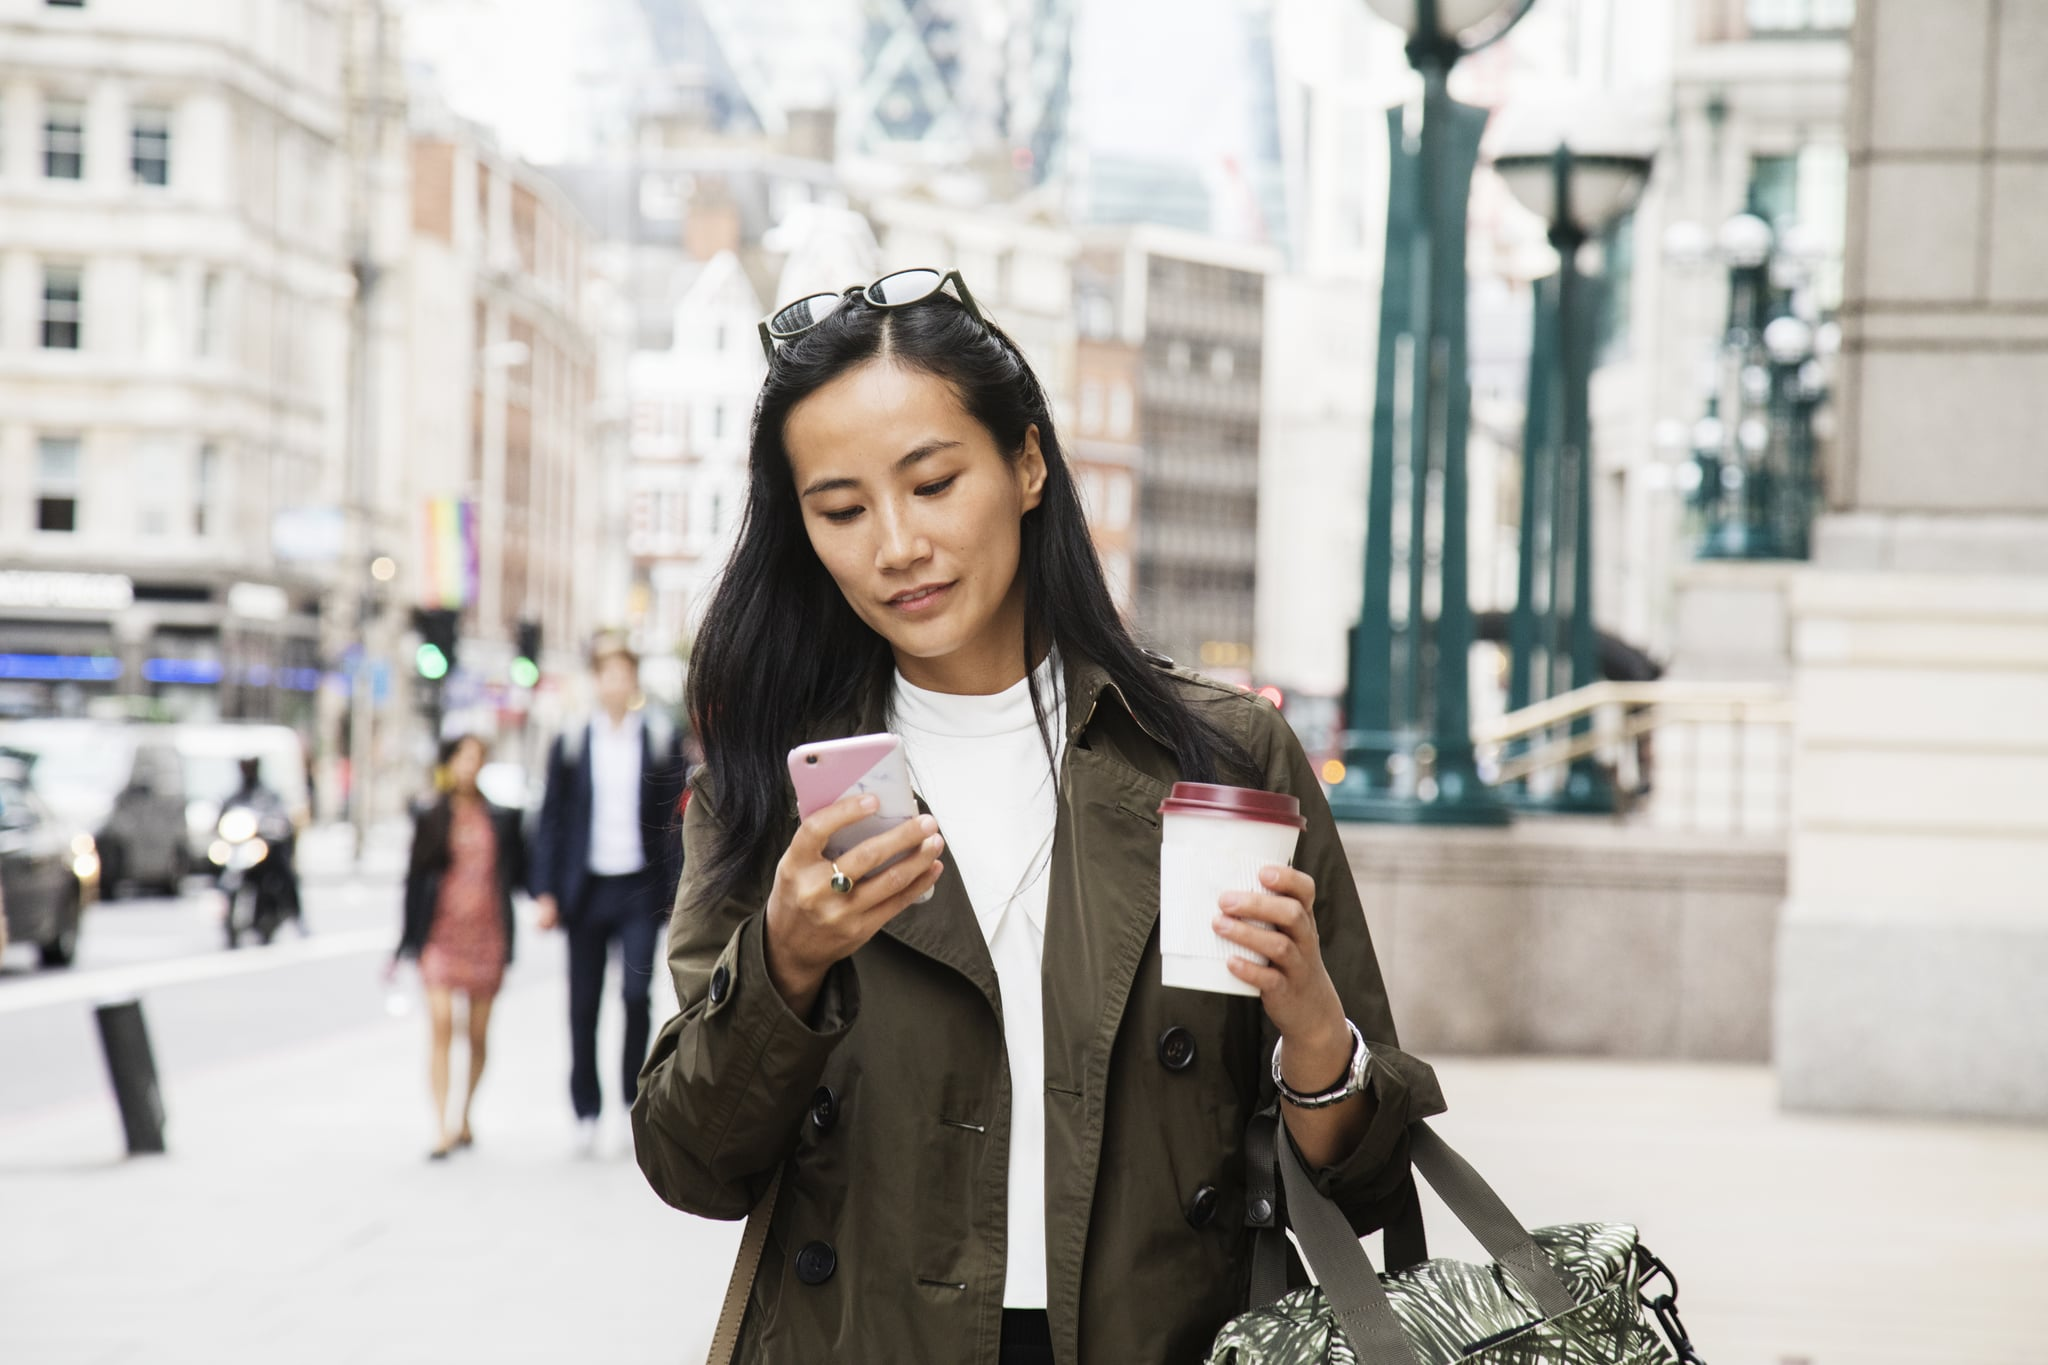 Want to Leave a Group Text Without Anyone Knowing? Here's How